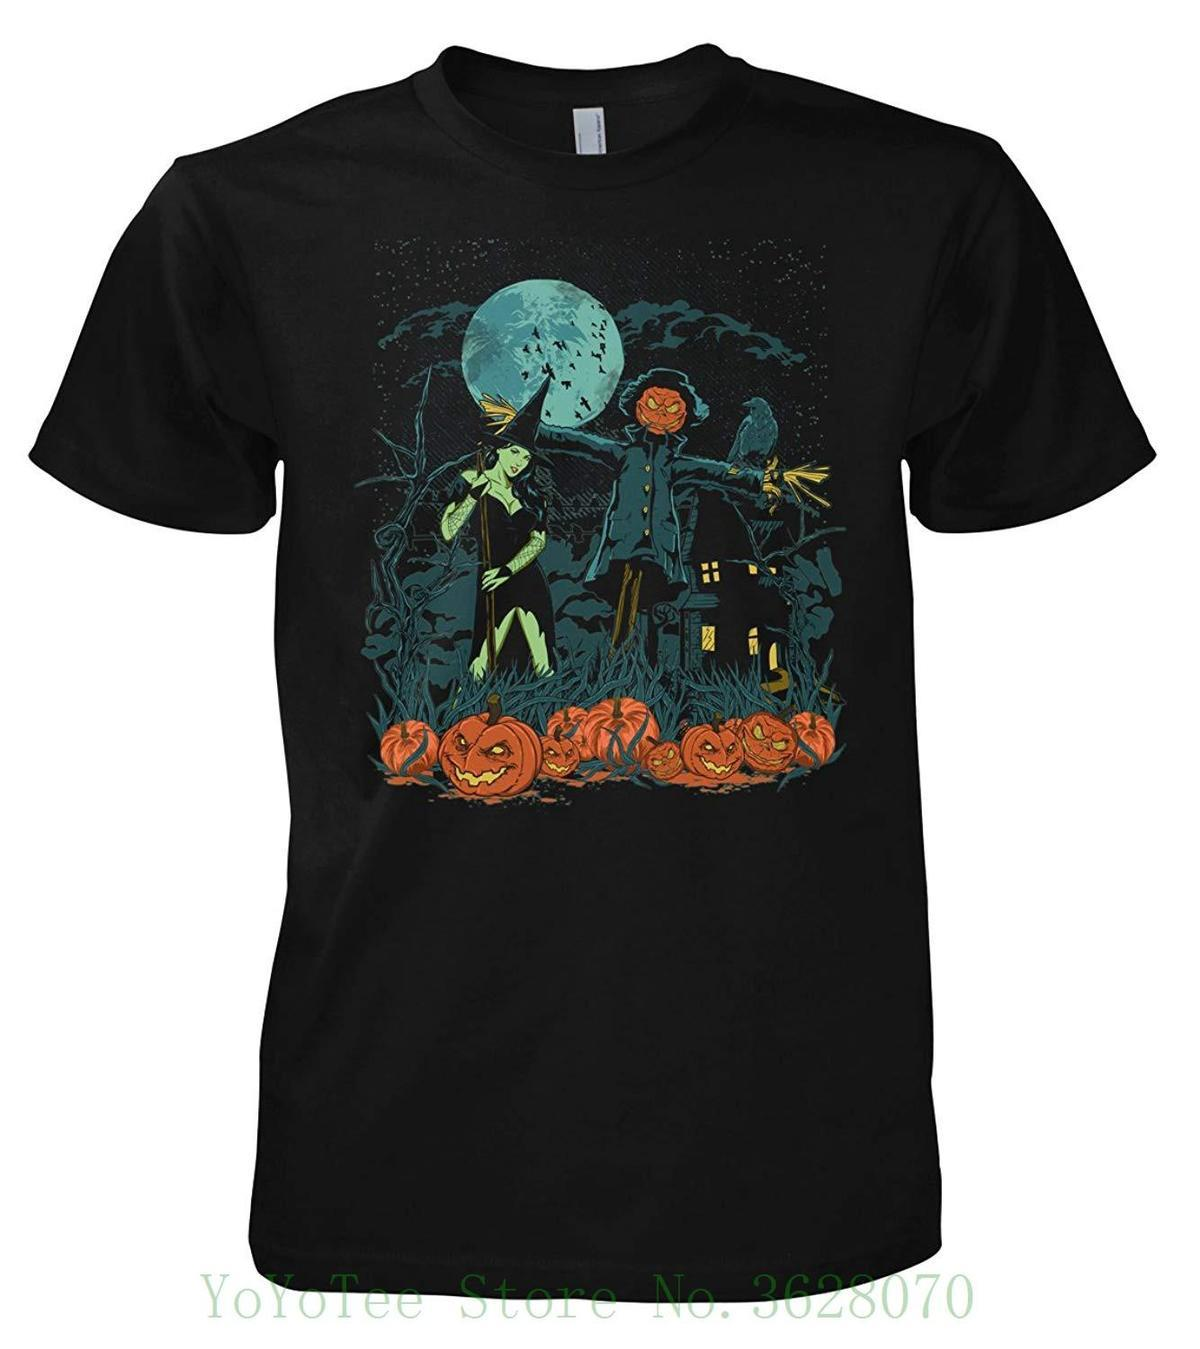 570e04ded93cb Rock Style Halloween Scarecrow 702344 T-shirt New Arrival Male Tees Casual  Boy T-shirt Tops Discounts